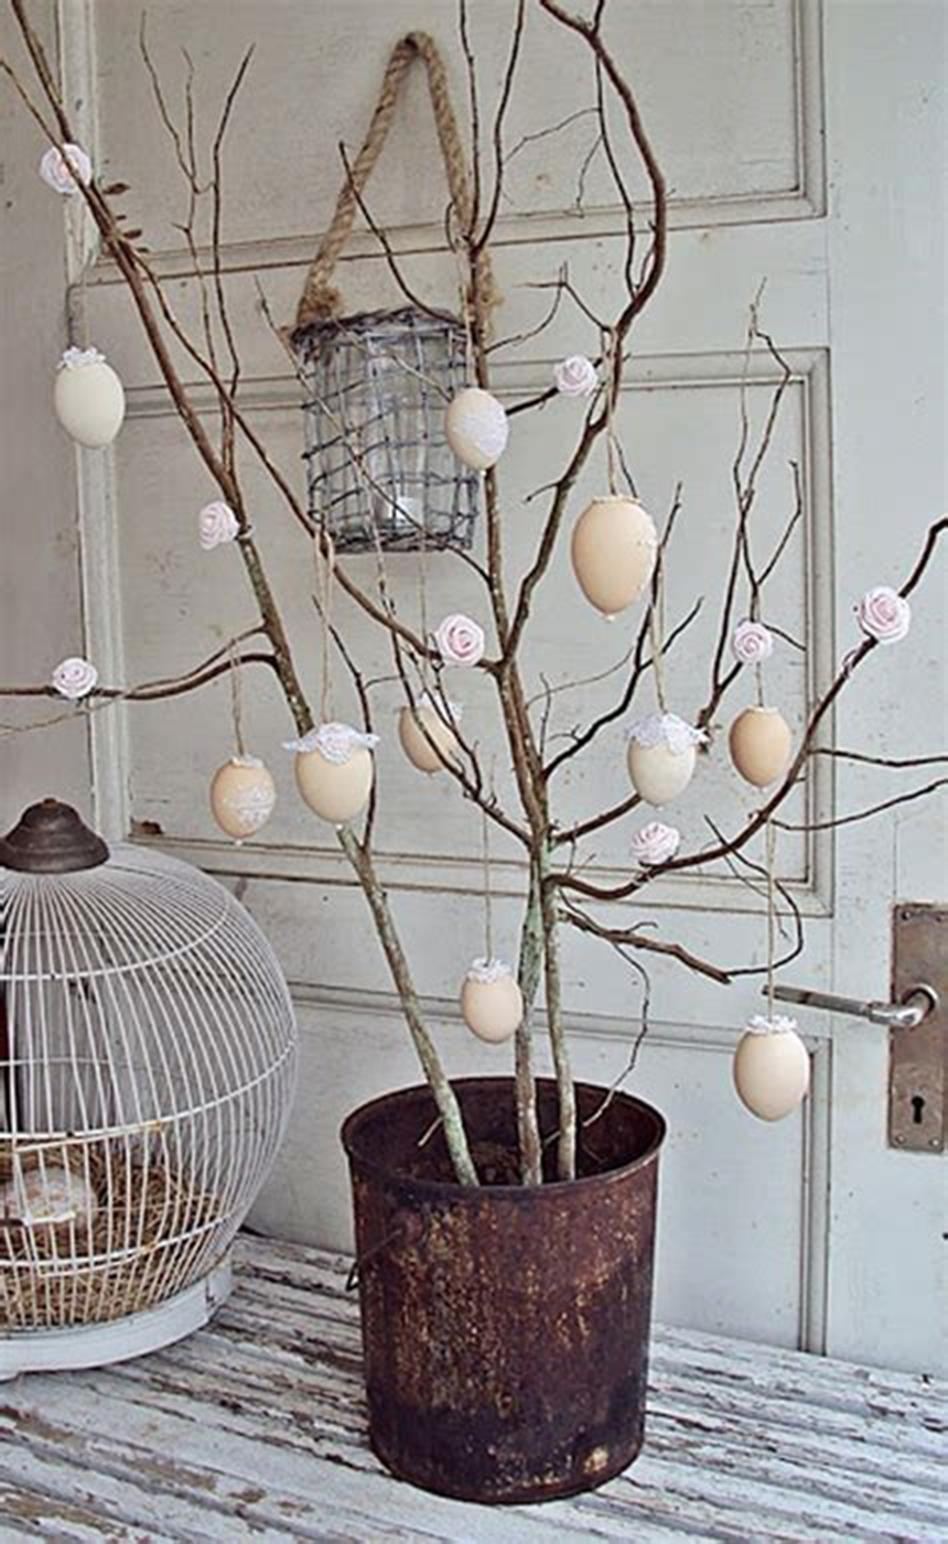 42 DIY Beautiful Vintage Spring Decorations Ideas You Will Love 5